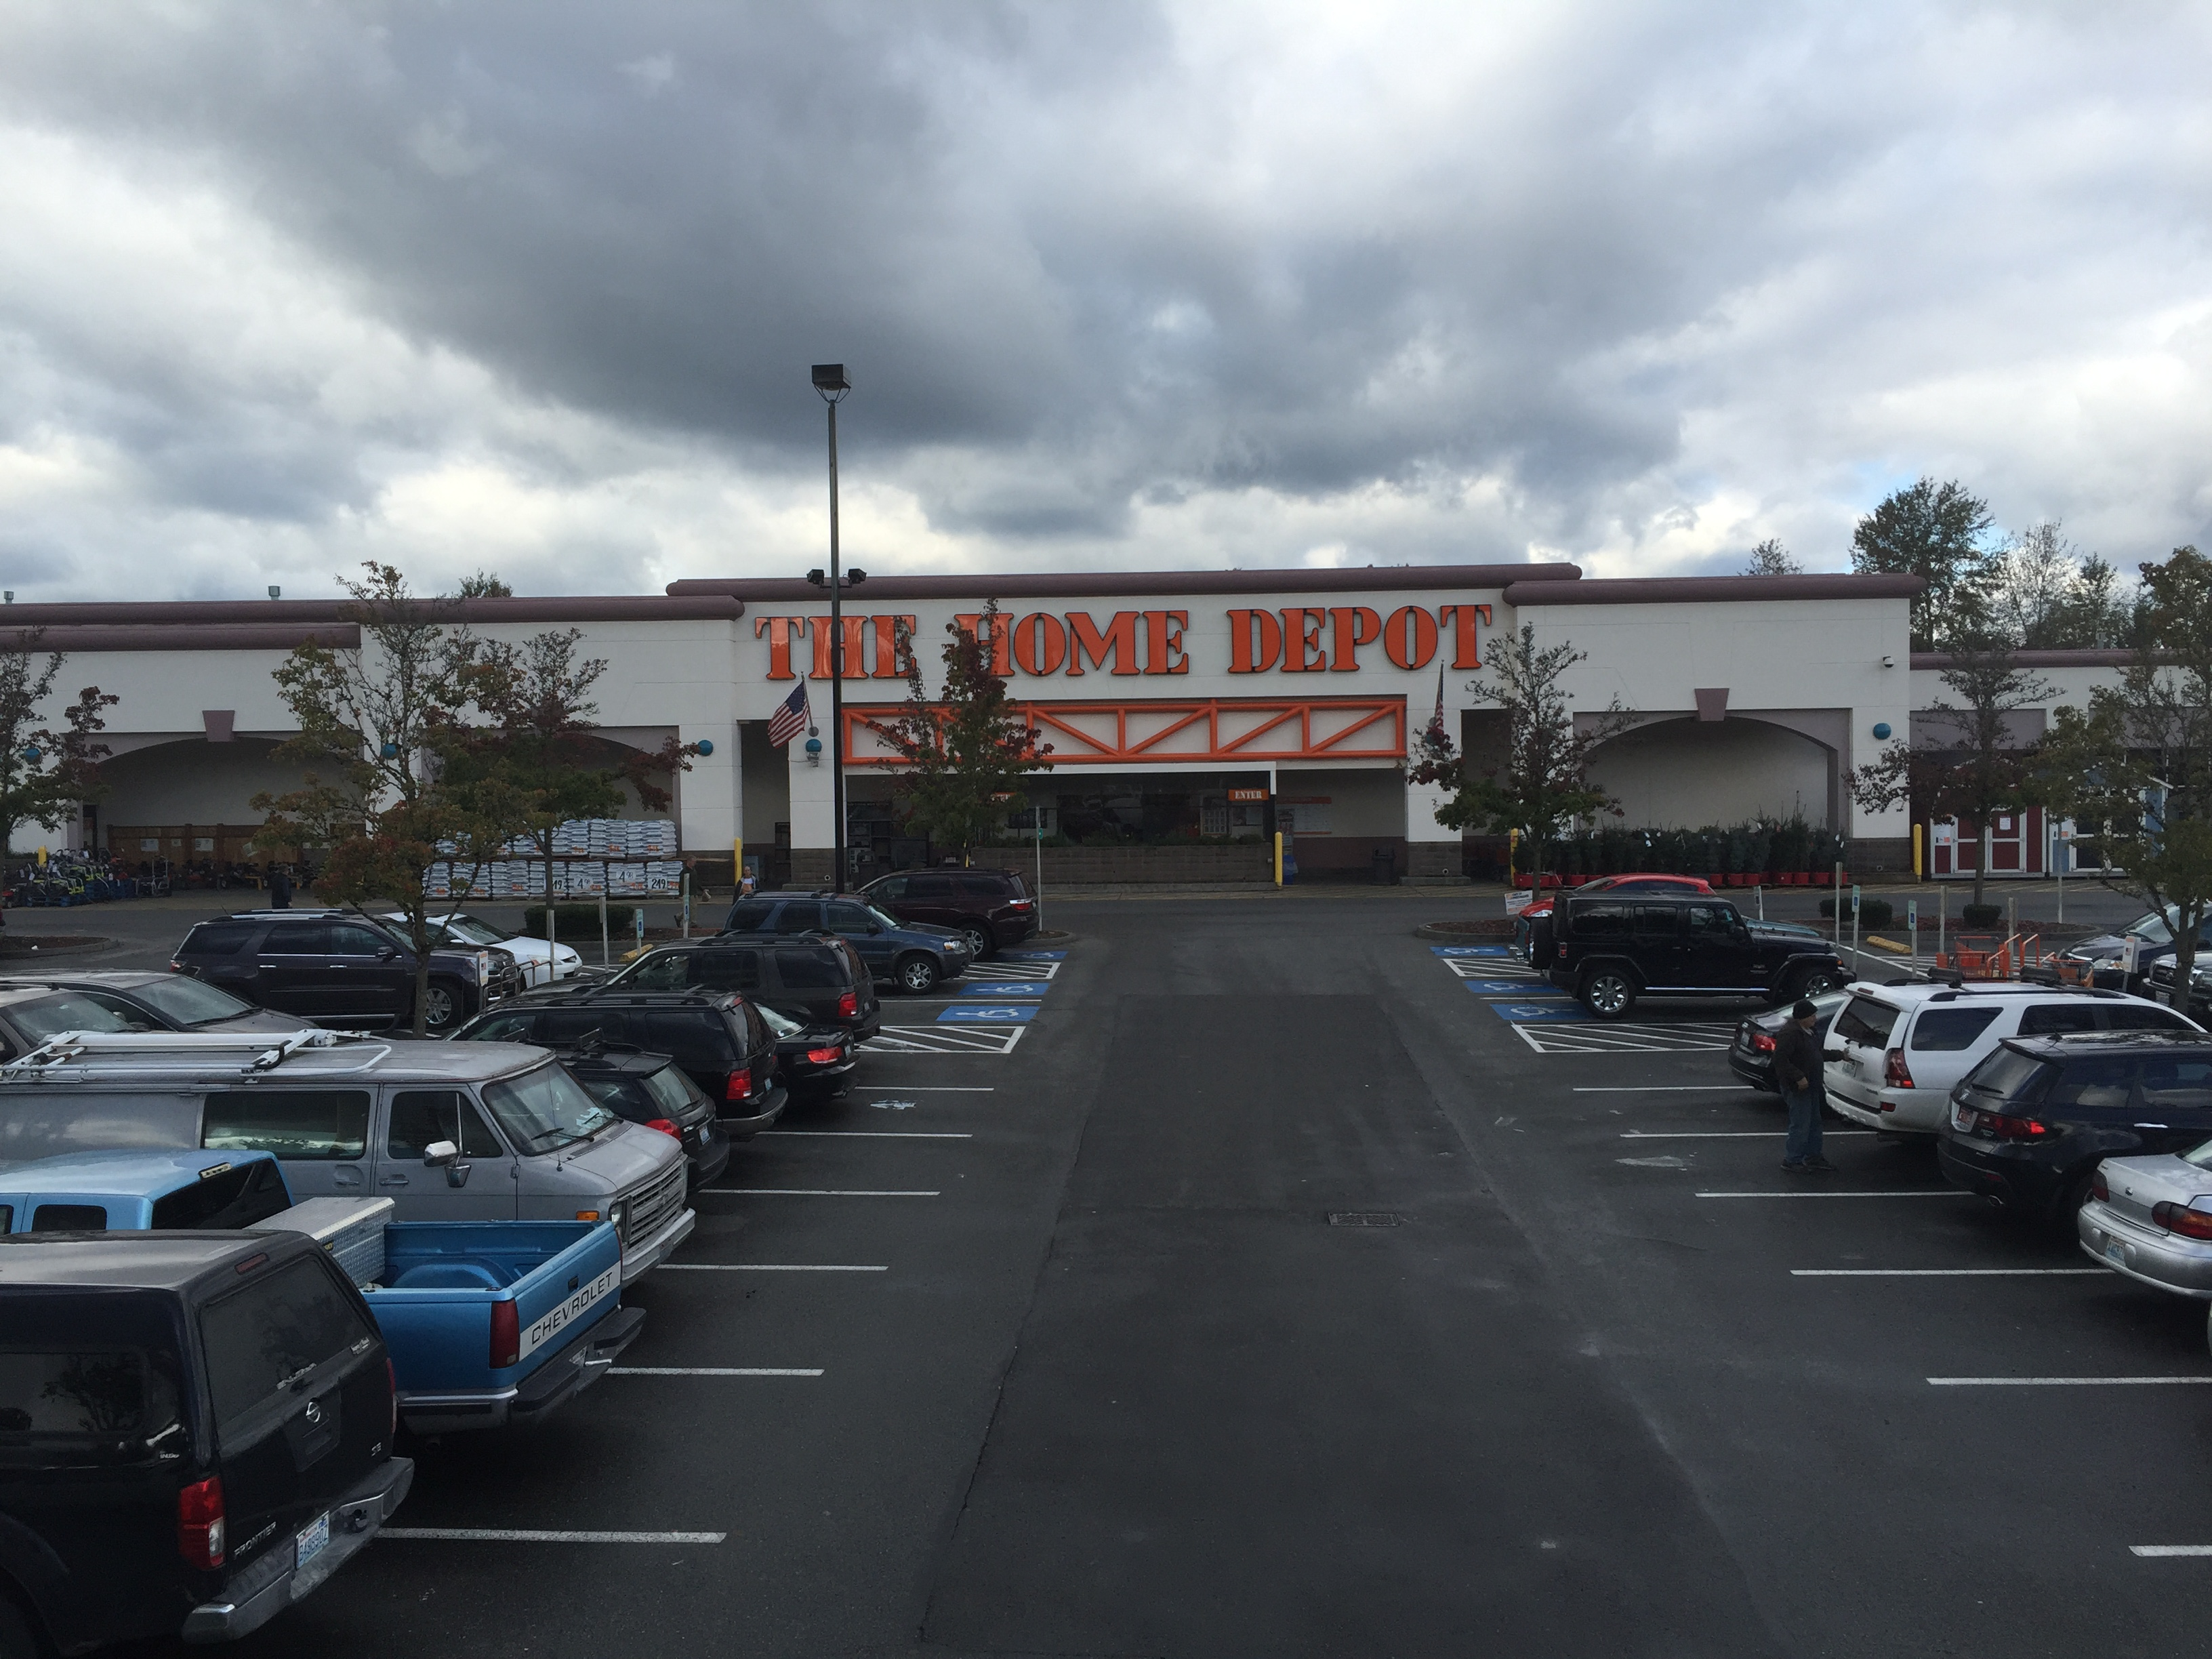 The home depot at 18333 120th ave ne bothell wa on fave for Home depot woodinville